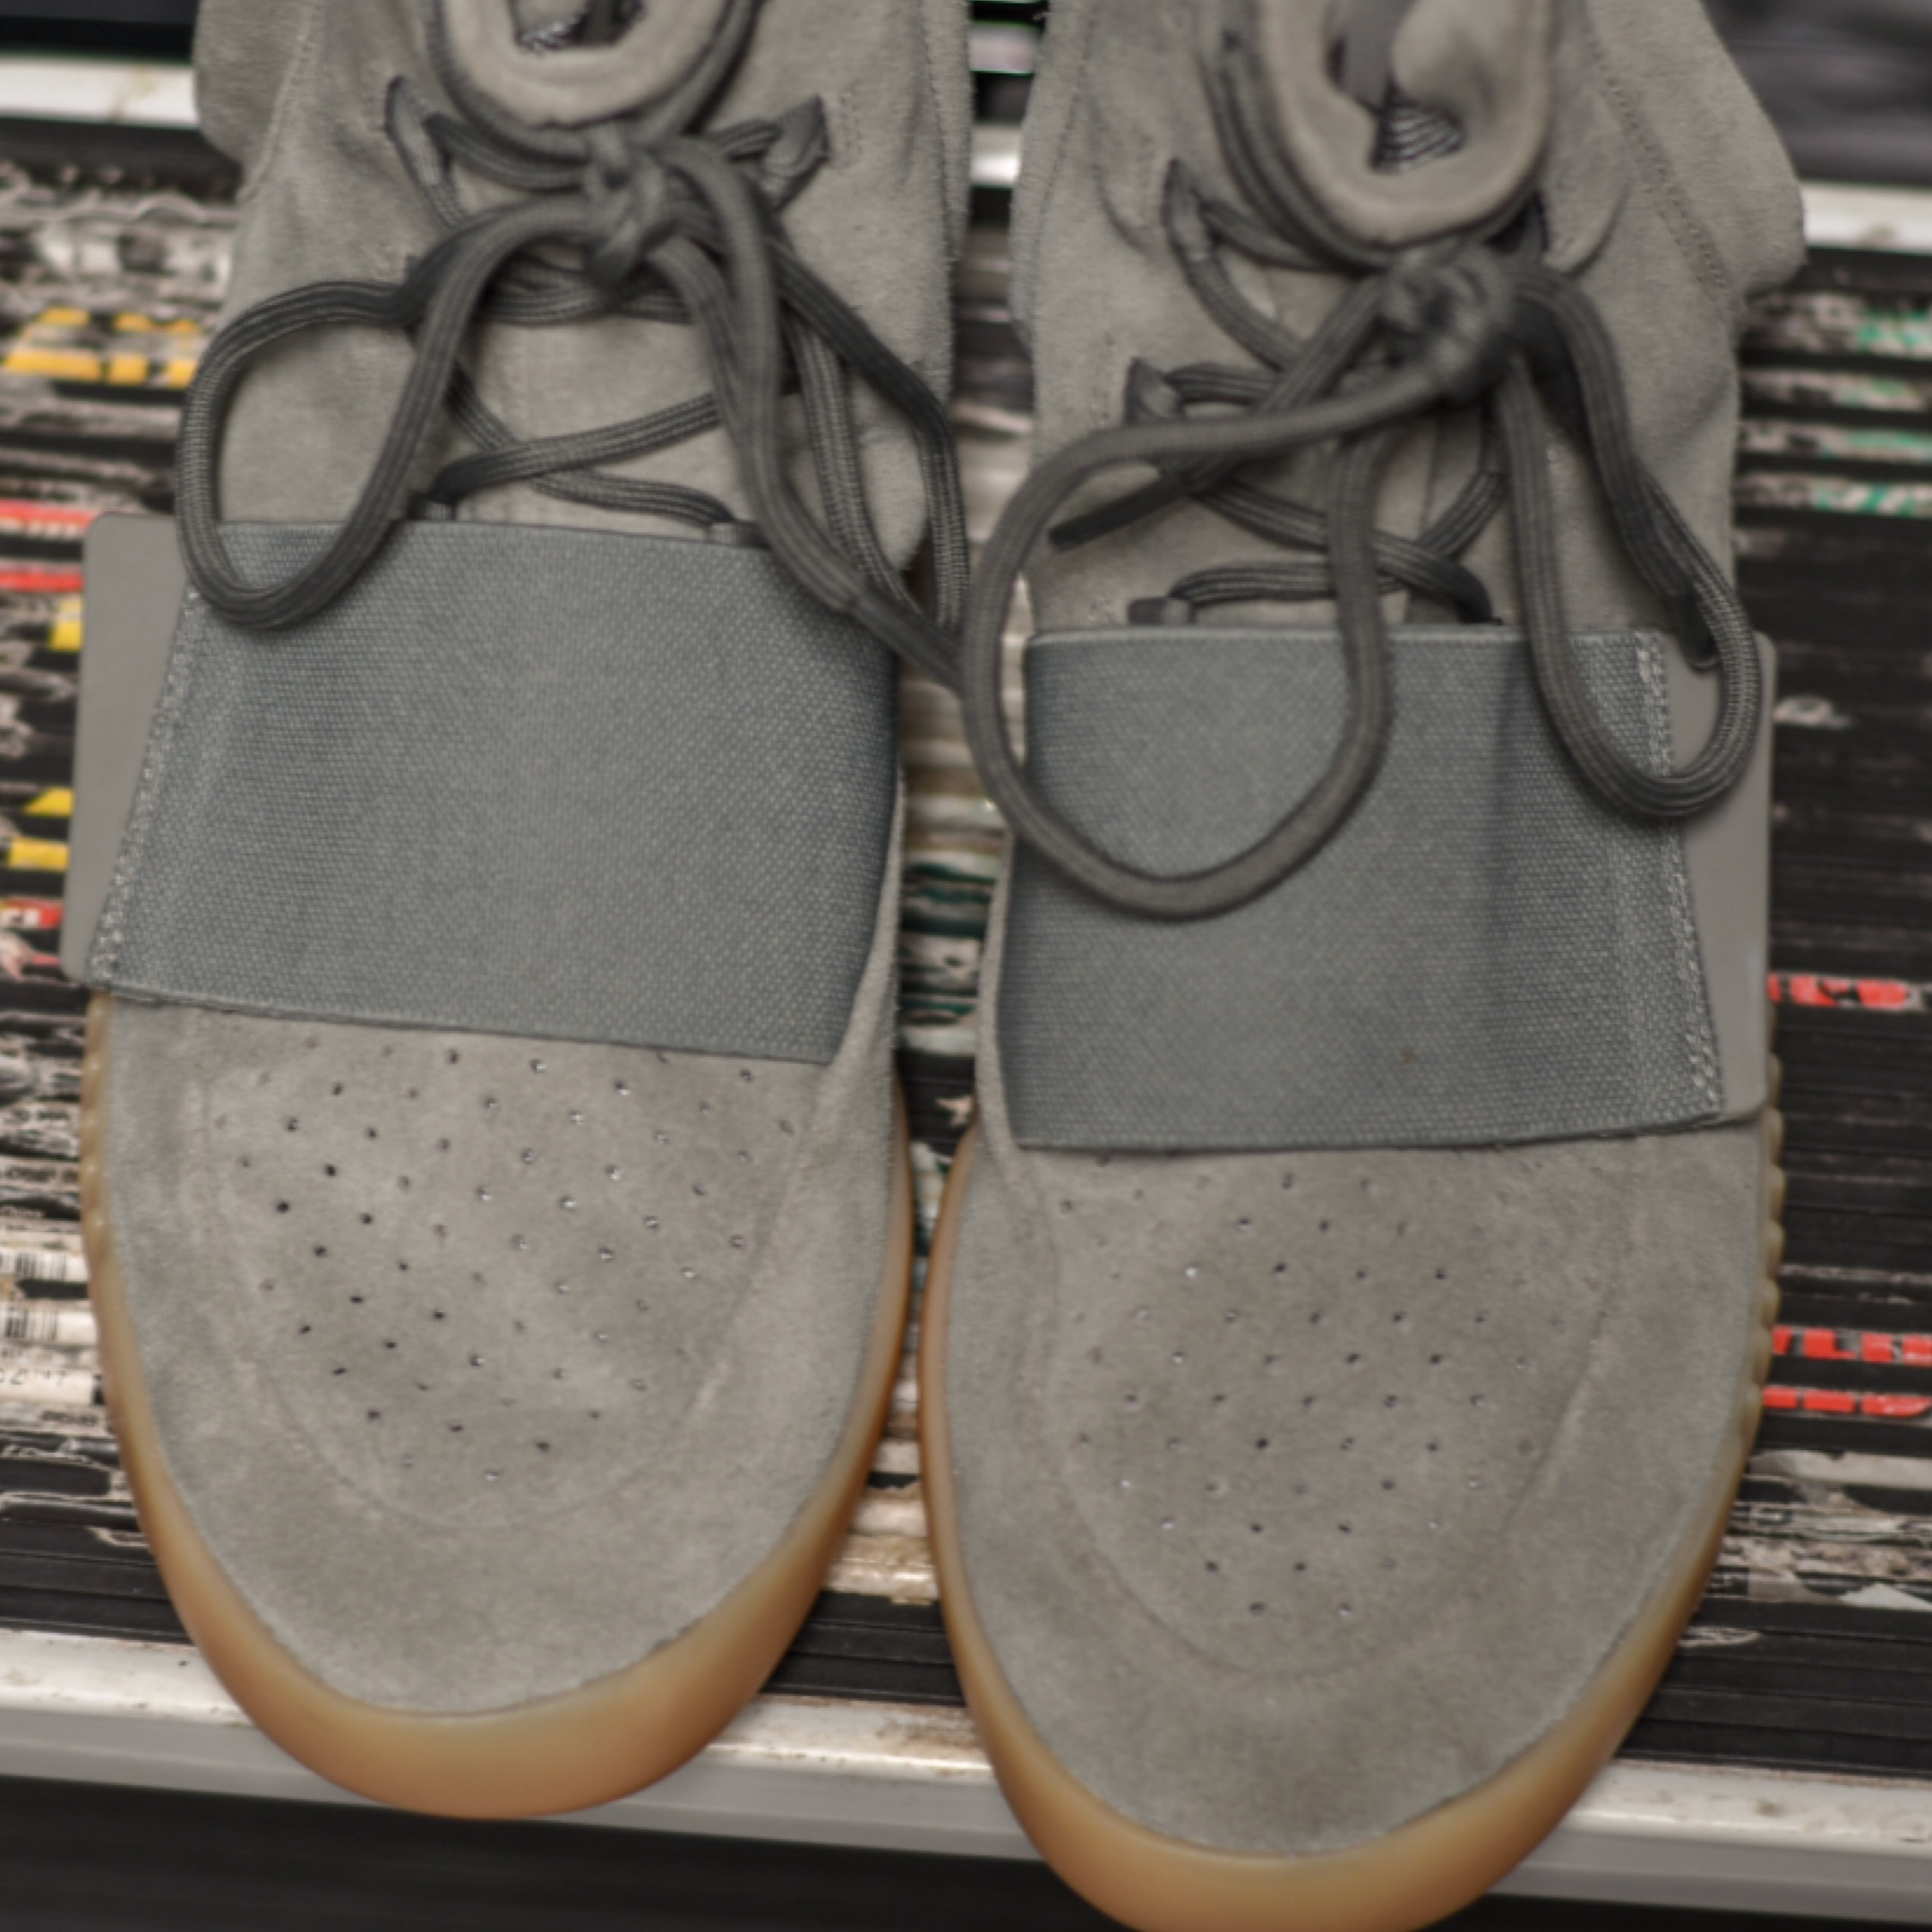 separation shoes e5000 19248 Adidas Yeezy Boost 750 Grey Gum Size 11 350 V2